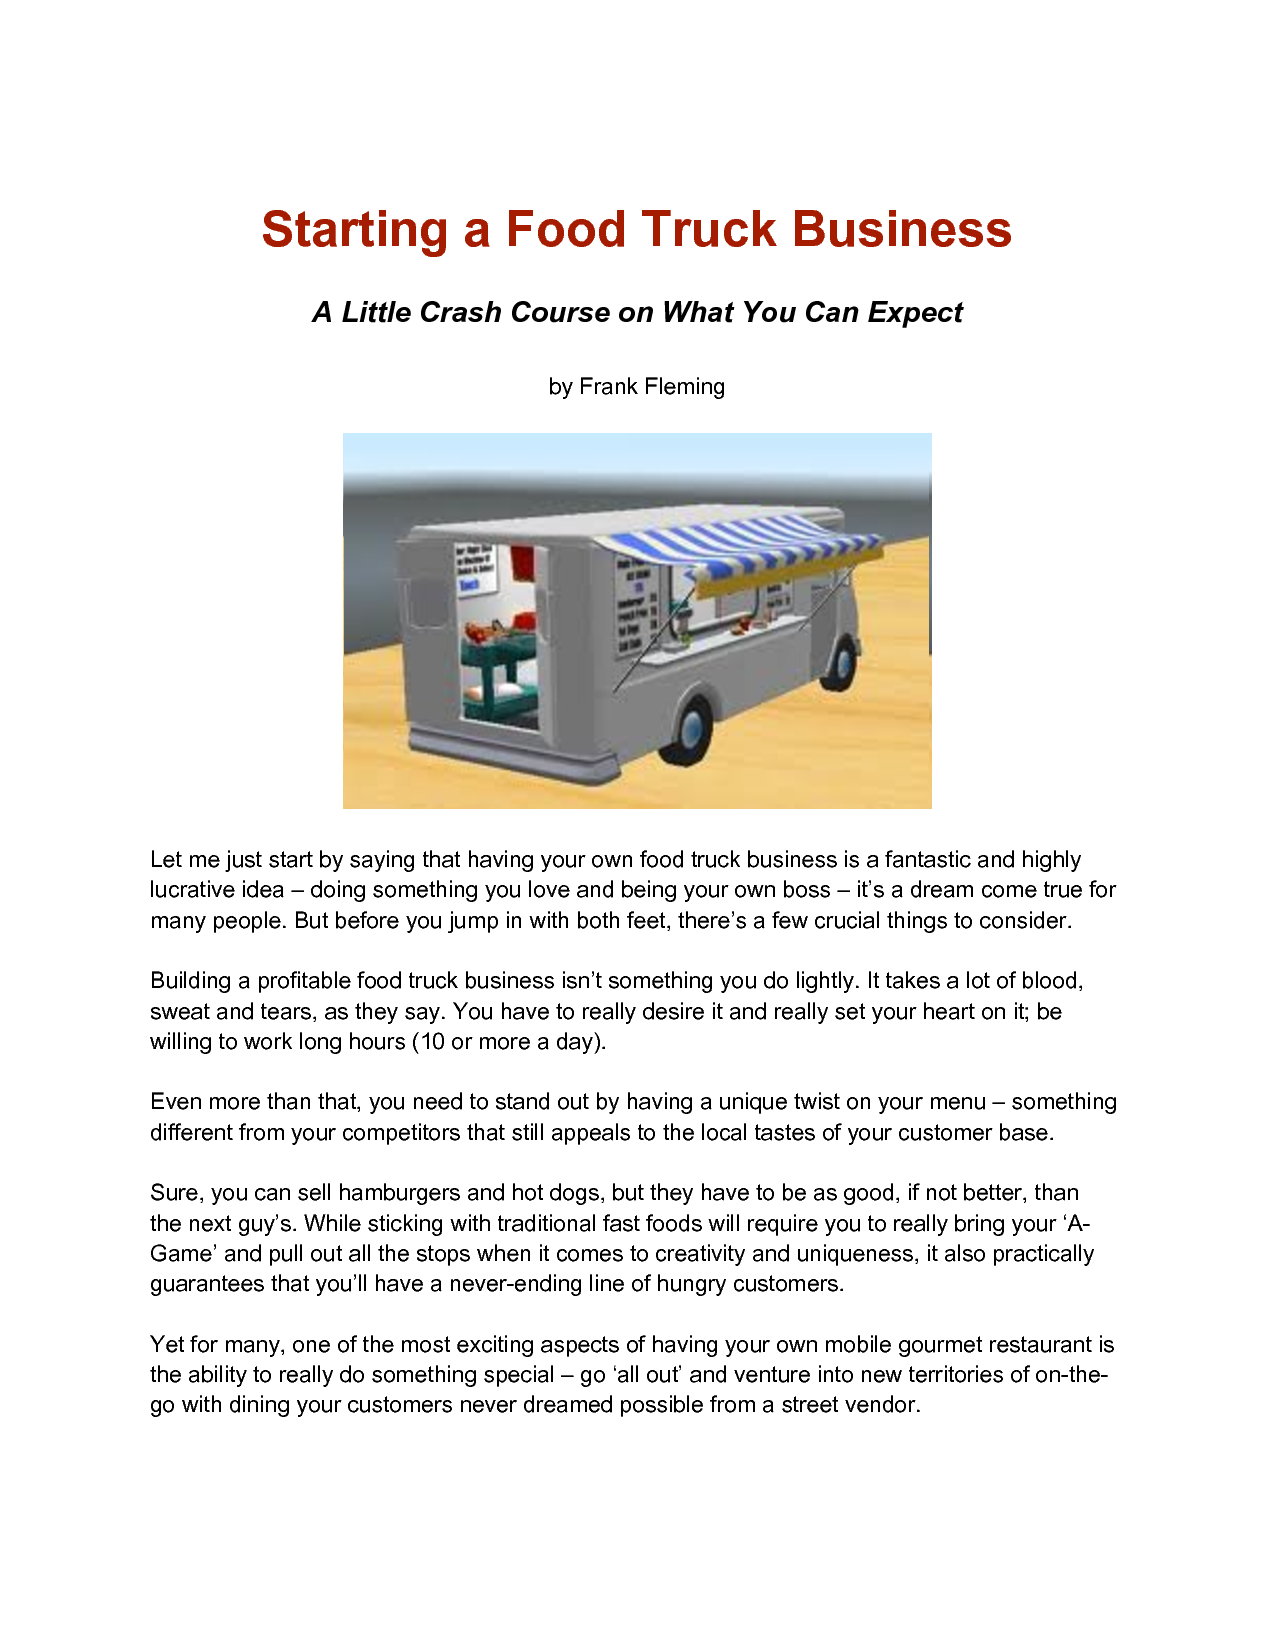 Pin by dr karl ruegg the business doctor on how to start and grow food truck business plan template httprplg8ebfc880 startbusiness flashek Choice Image